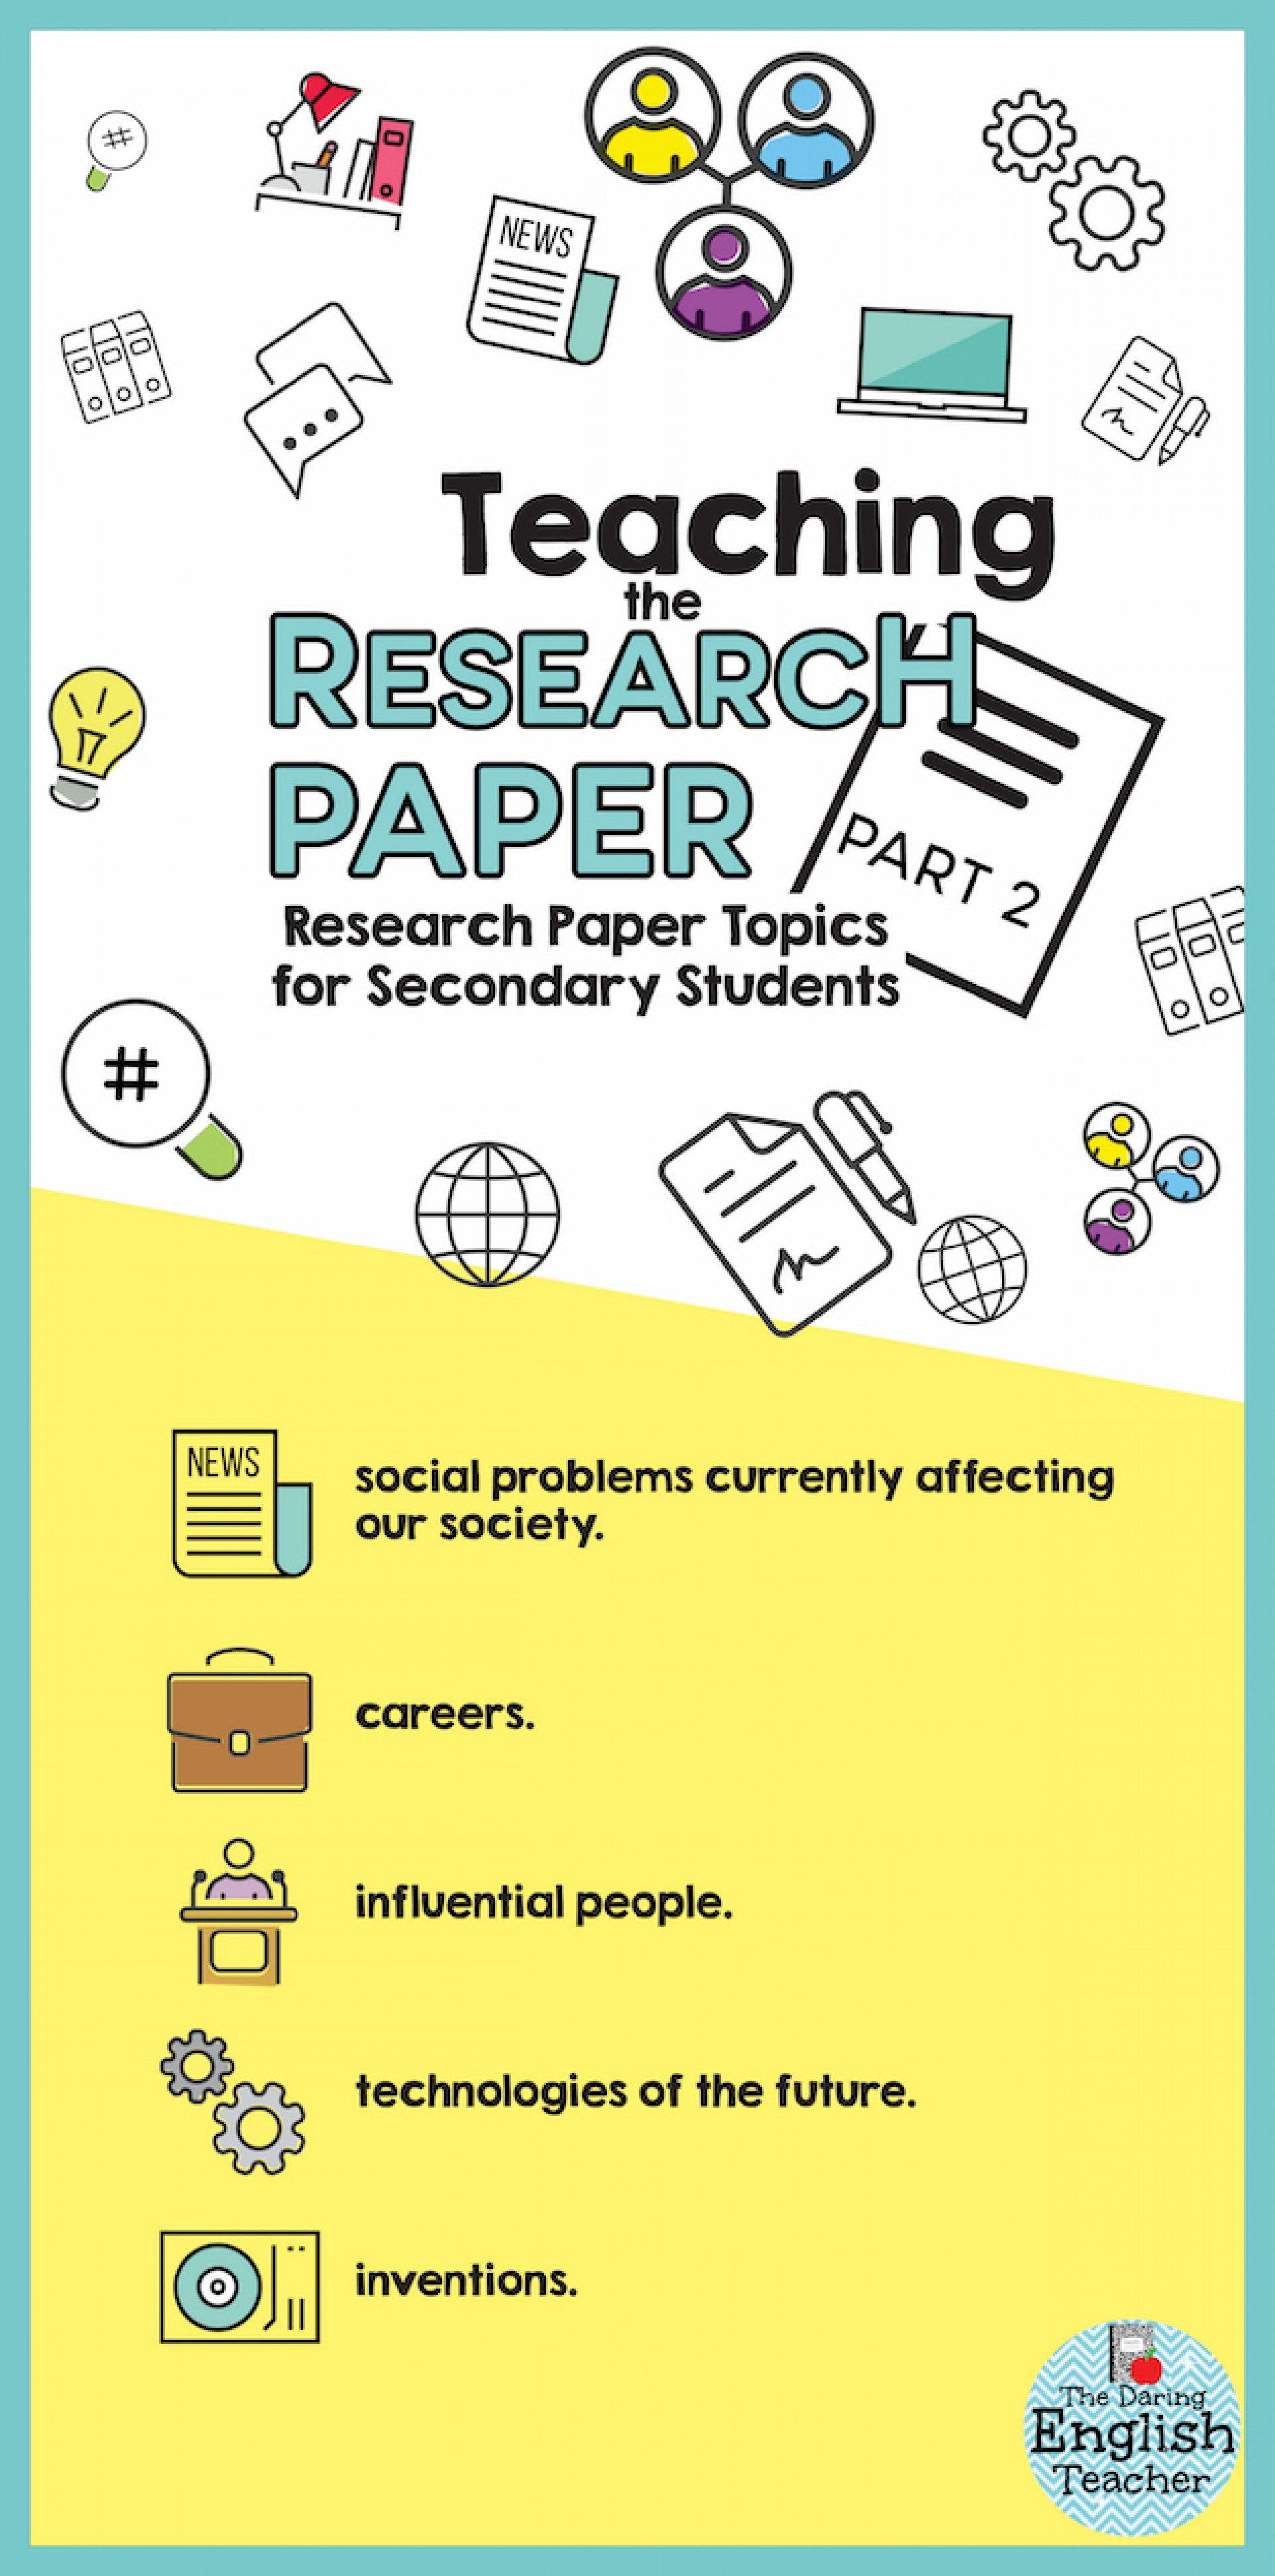 020 Infographic2bp22b2 Research Paper Topic For Unusual A Topics In Psychology List Of On Education 1920